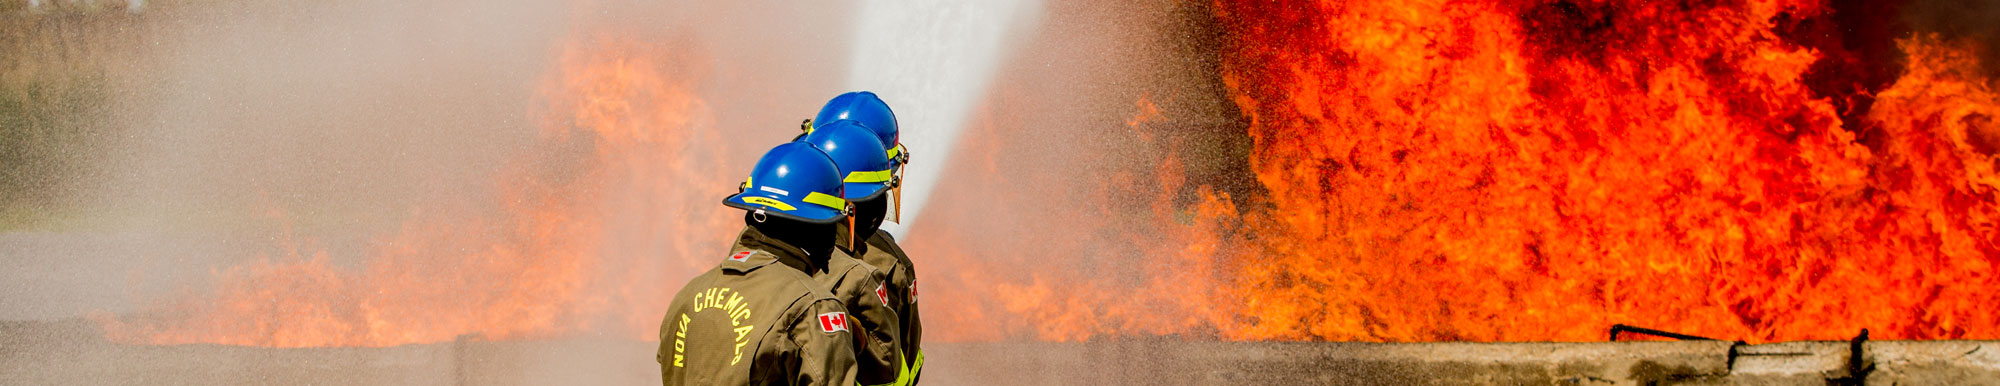 Fire Training with Live Fuel